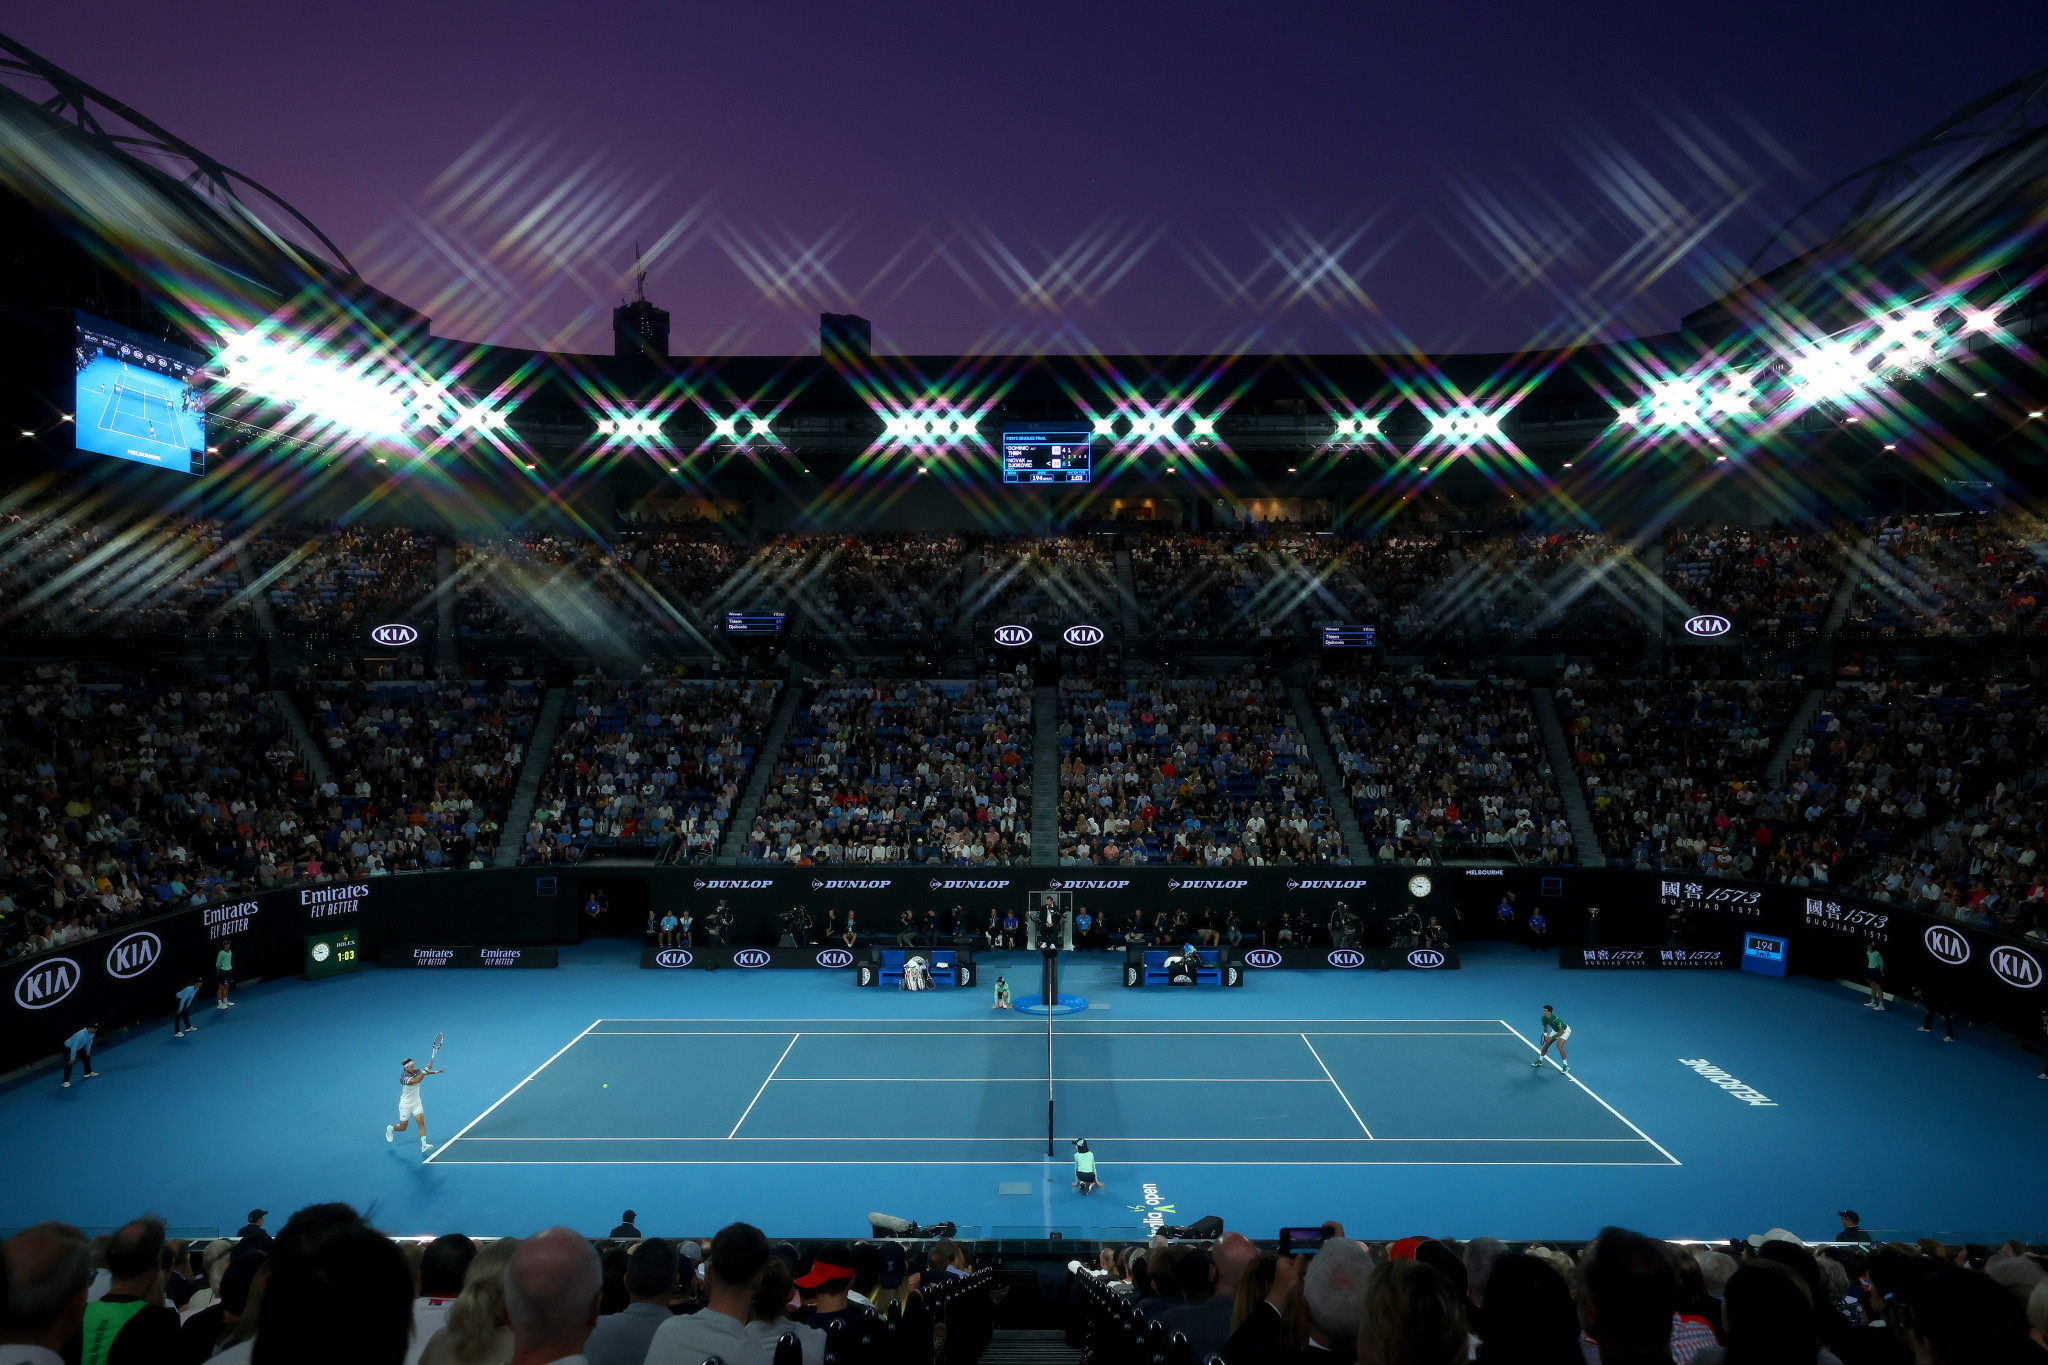 Under the current plans, the 15,000-seater Rod Laver Arena will hold 25 per cent of its capacity ©Getty Images